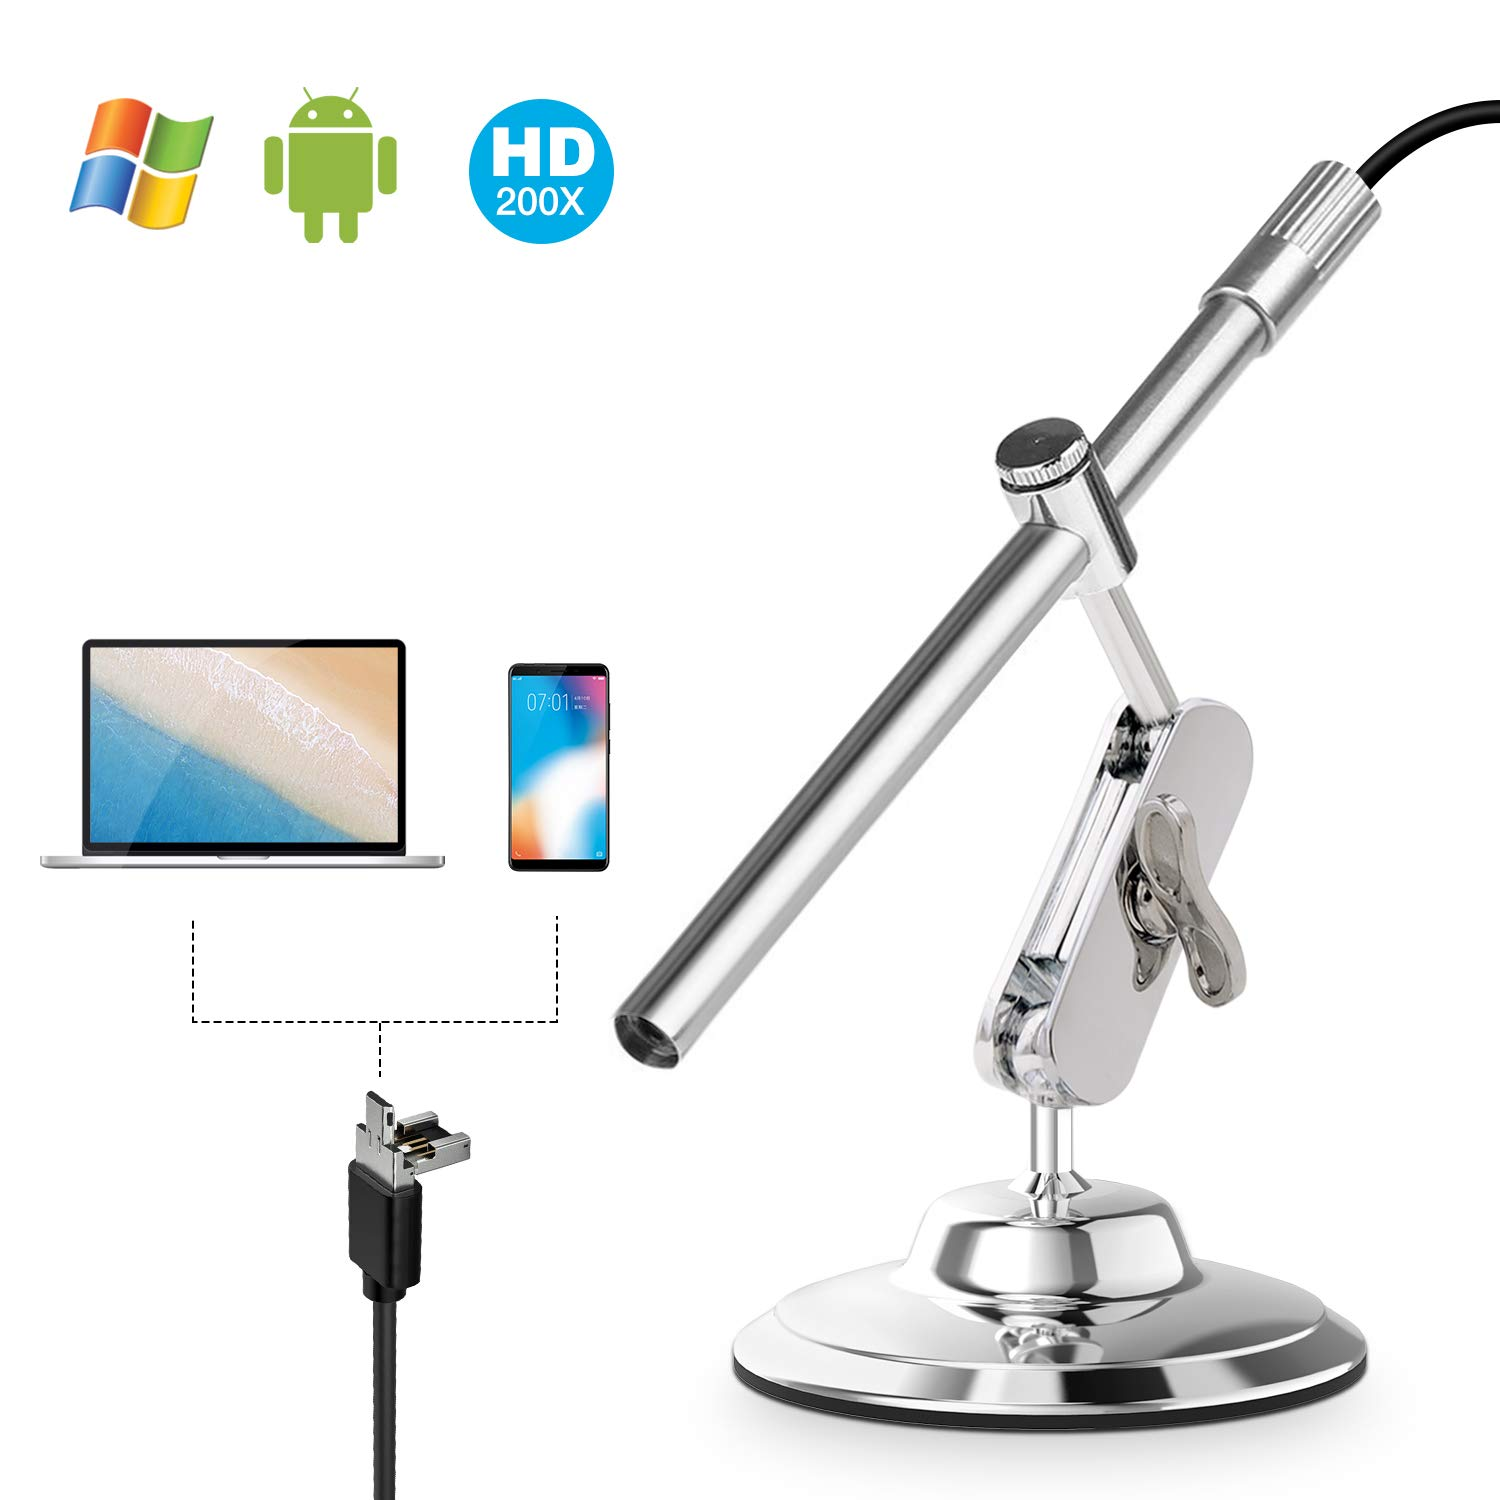 USB Microscope, Depstech IP67 Waterproof Digital Endoscope Inspection Camera with Zoom Lens 10X-200X Magnification, CMOS Camera for Android Smartphone, PC & Macbook OS Computer